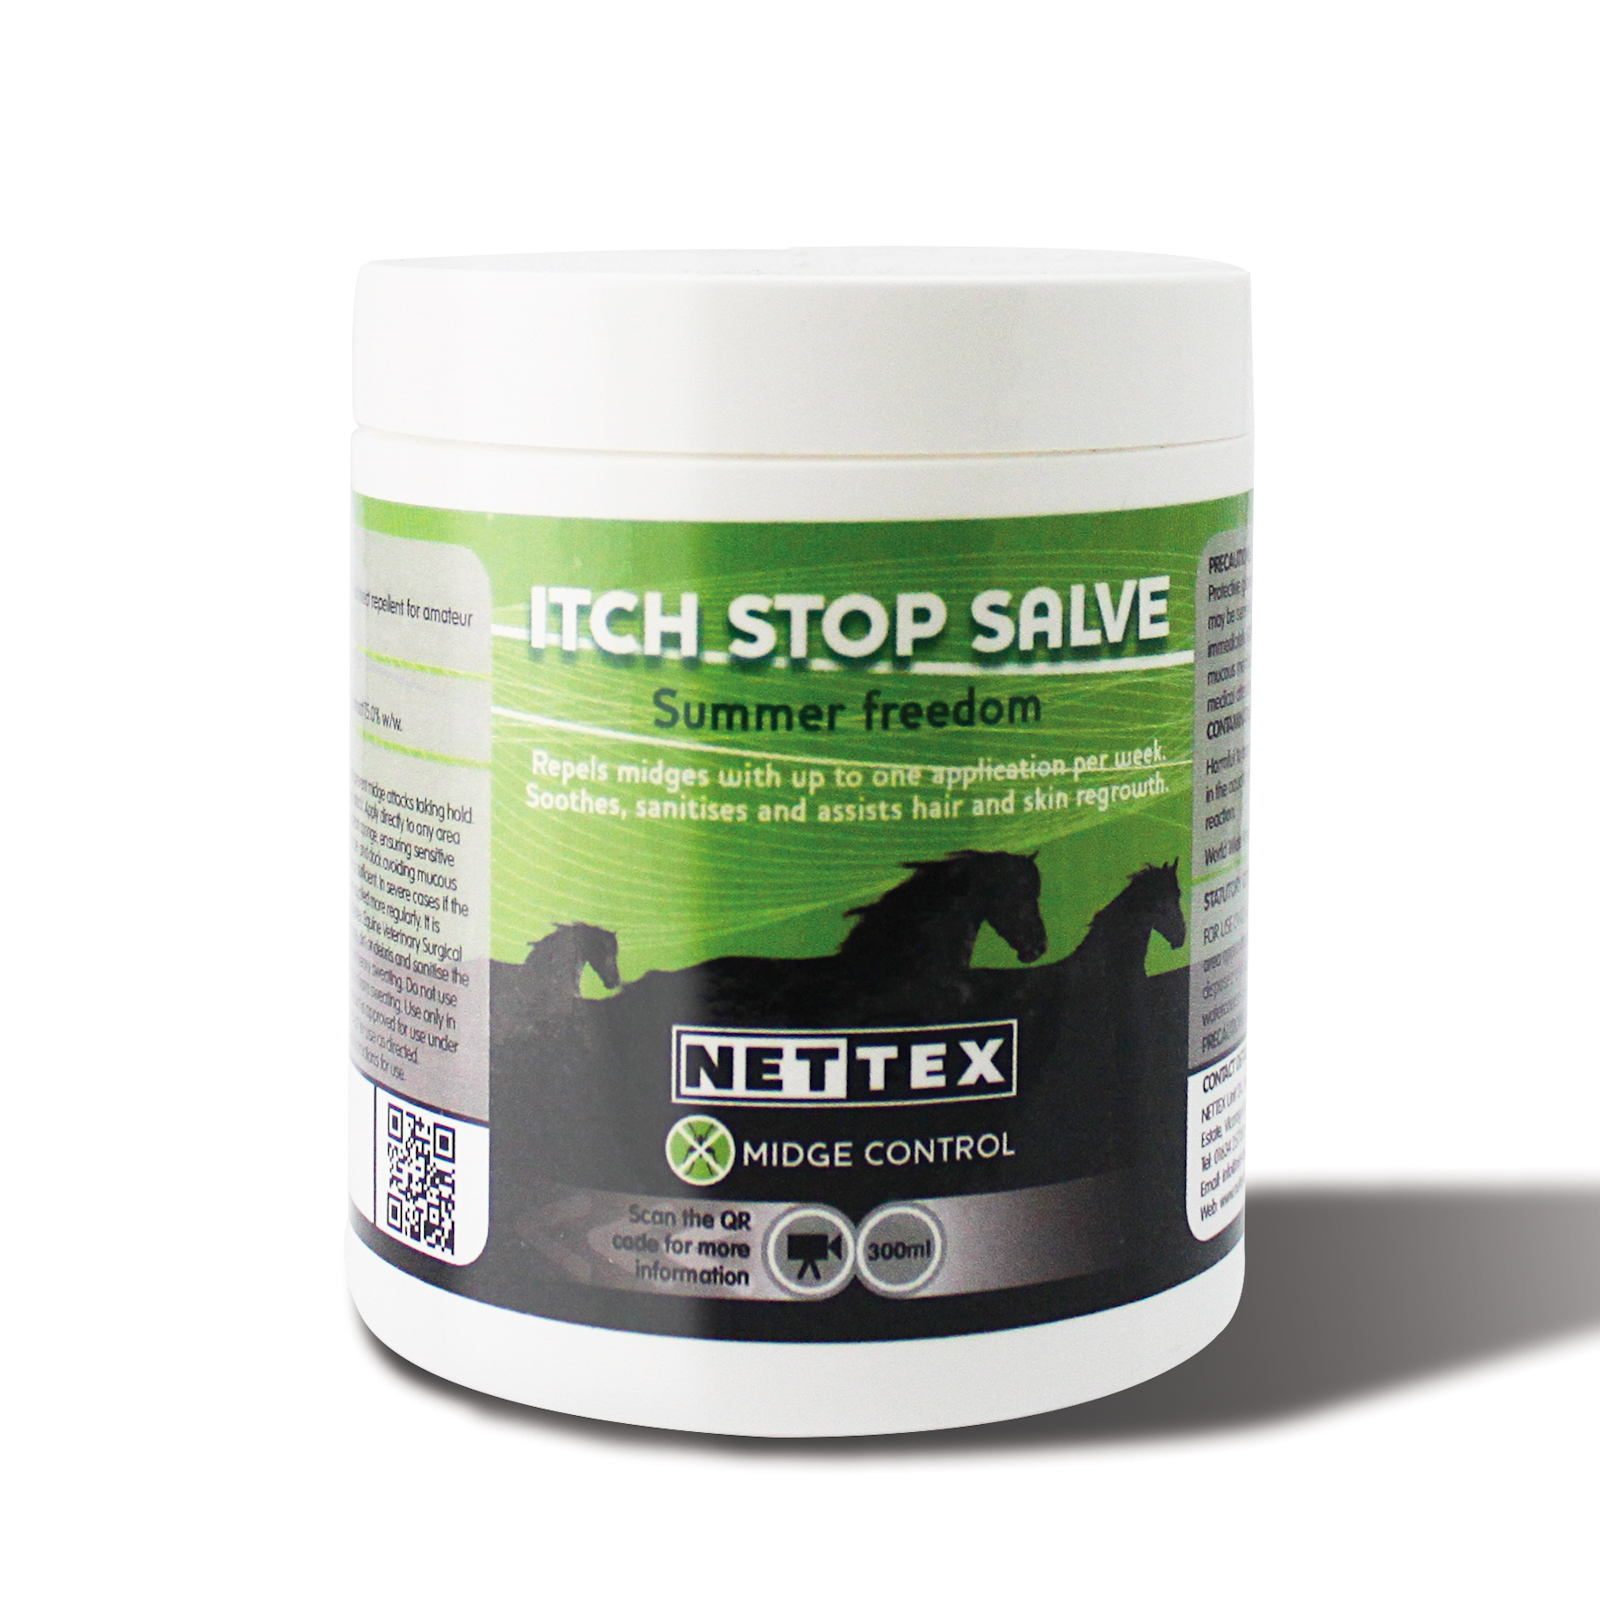 Nettex Itch Stop Salve -New Size Ny storlek 300 ml